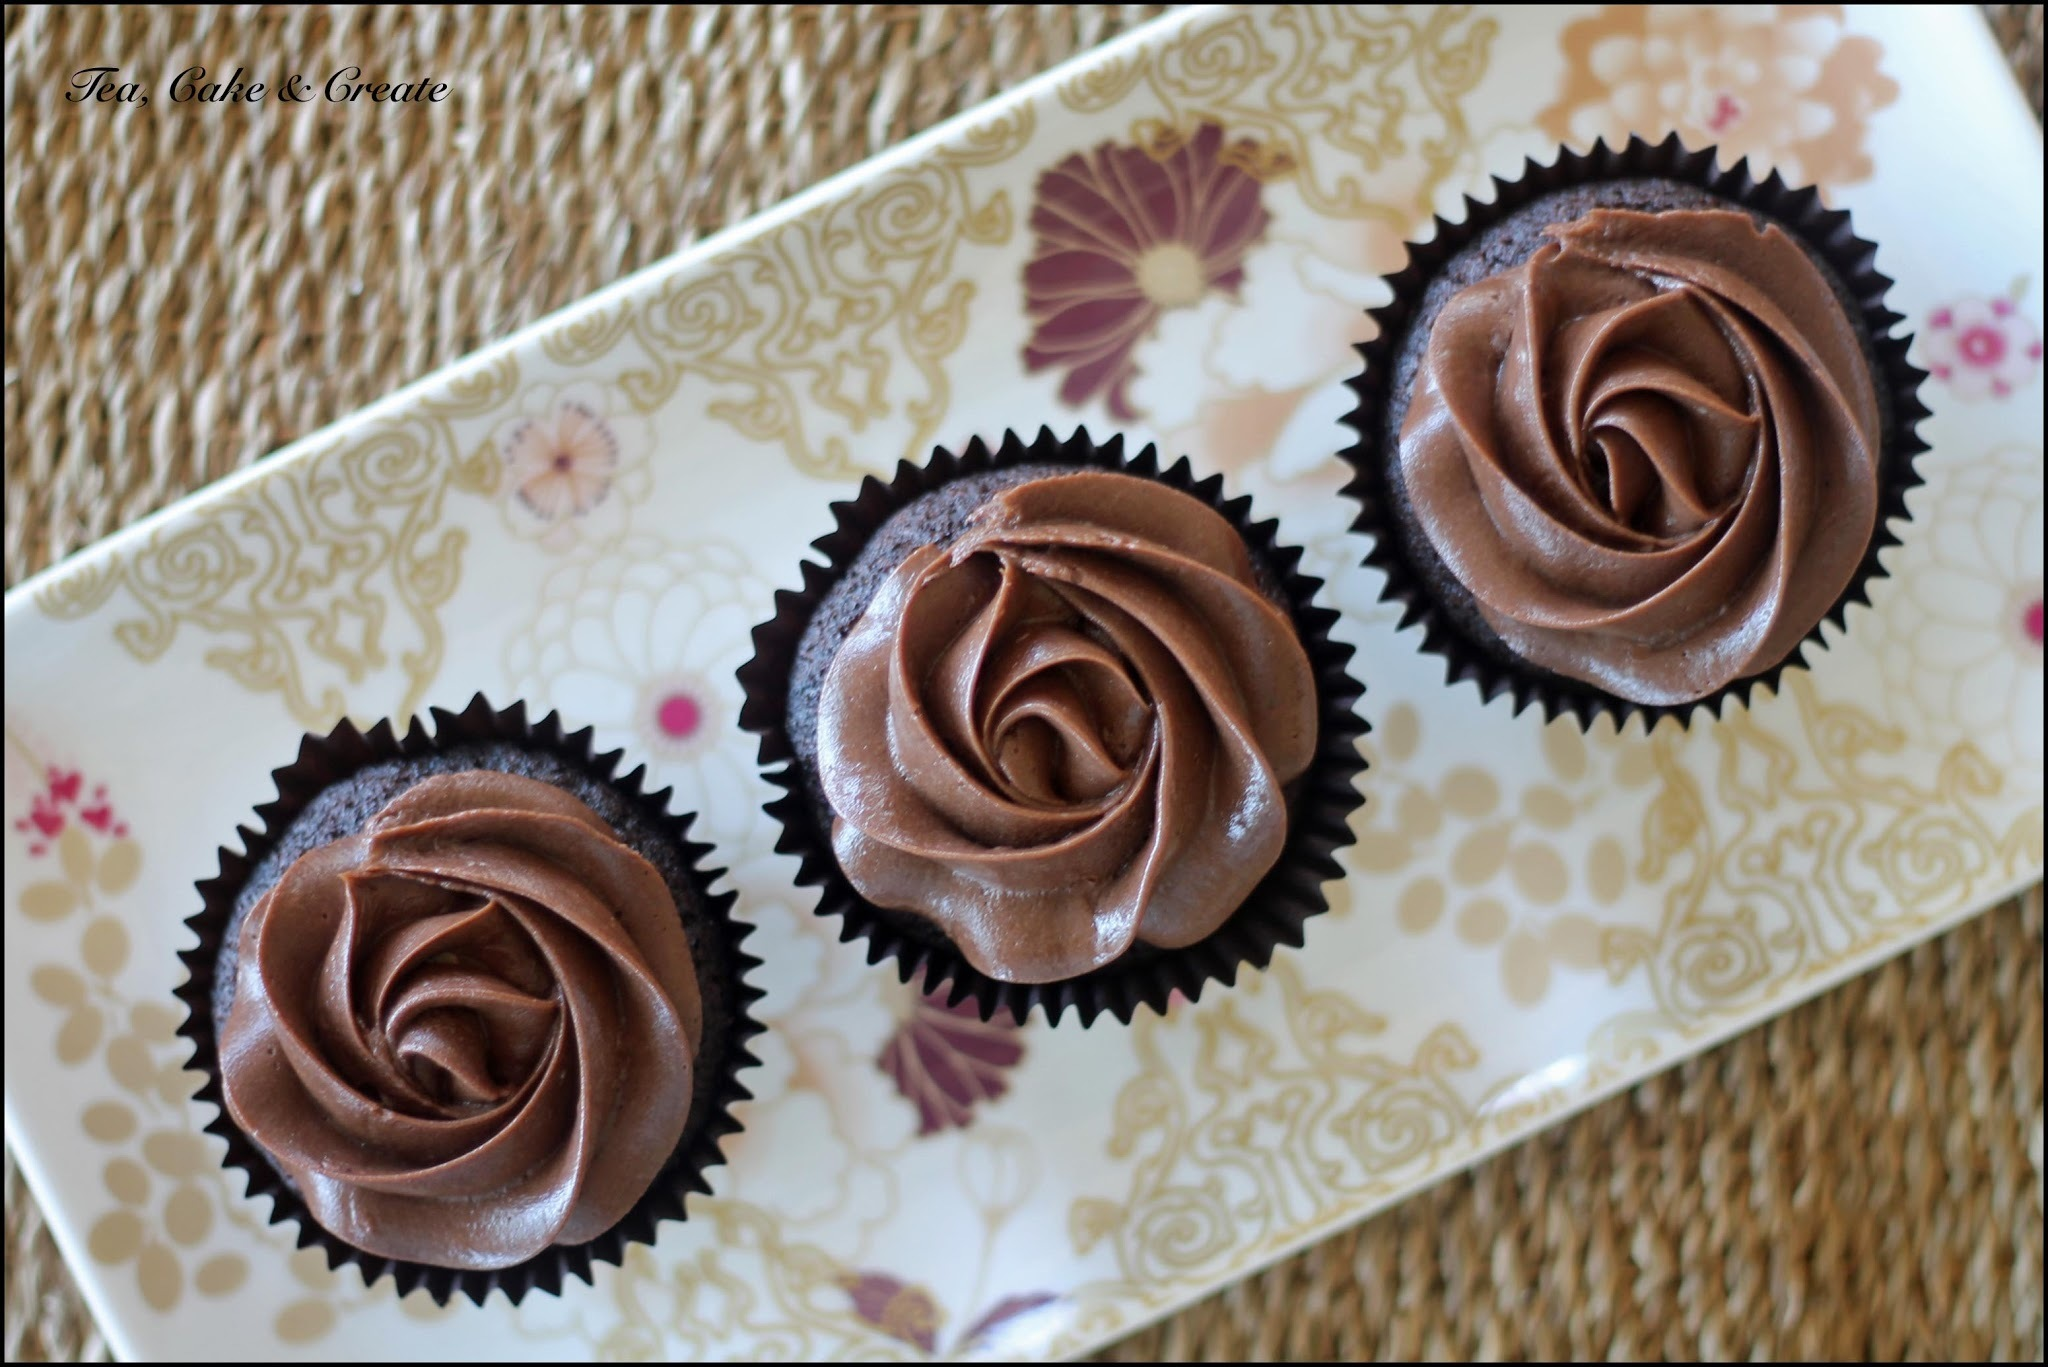 Chocolate Cupcakes with Amarula Ganache Centres